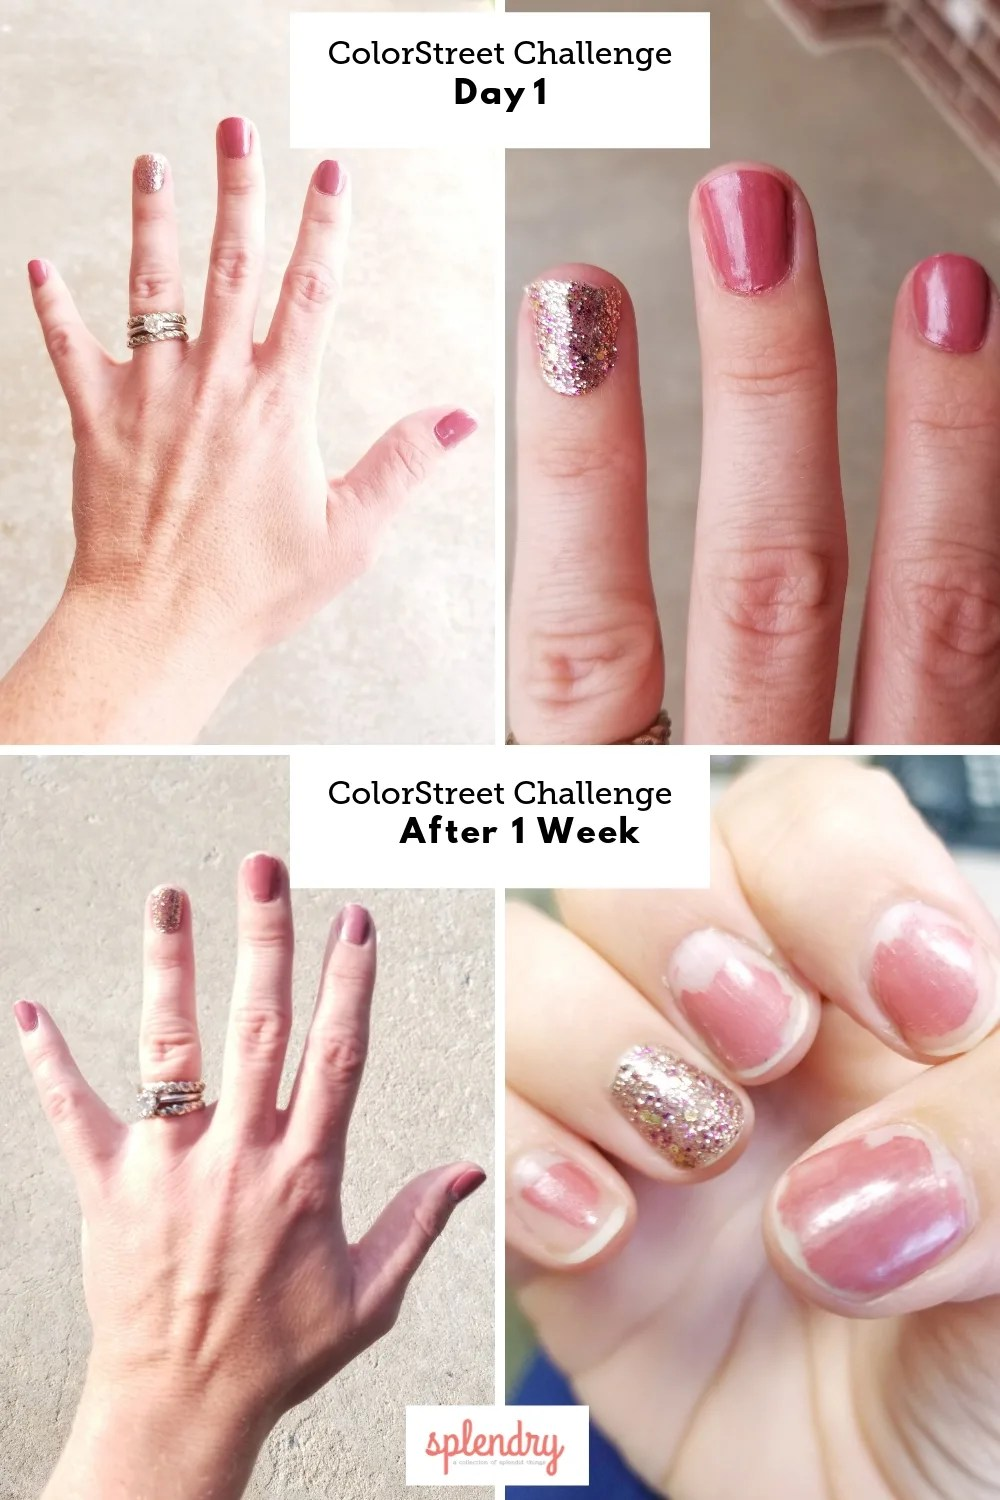 Color Street Ruined My Nails : color, street, ruined, nails, Color, Street, Challenge, Splendry